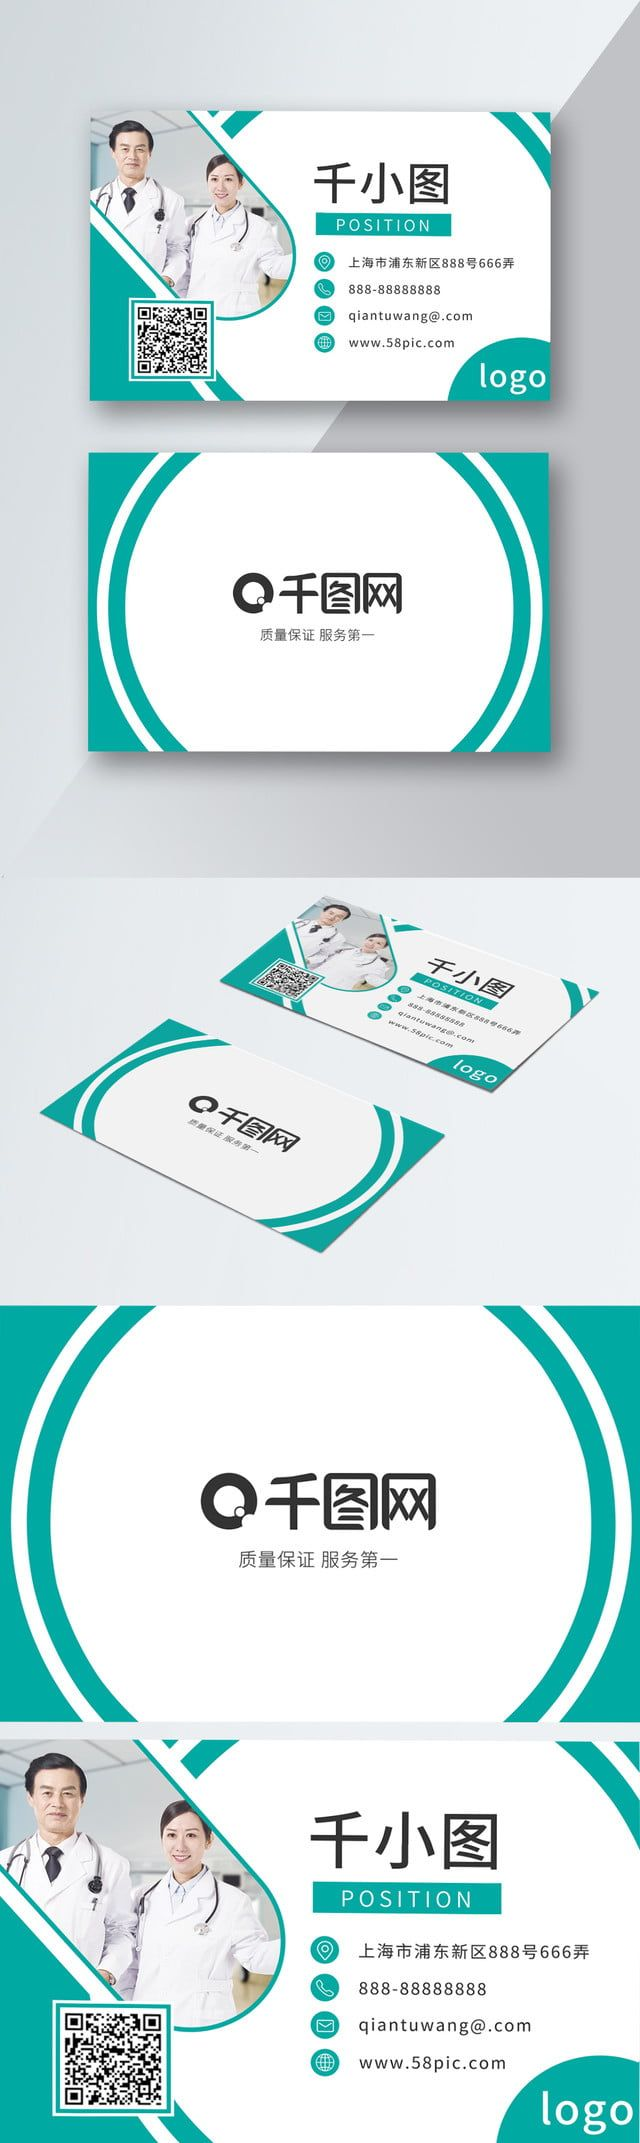 Hospital Business Card Clinic Business Card Vector Material Hospital Business Card Clinic Business Card Template Download Vector Business Card Business Card Templates Download Photography Business Cards Template